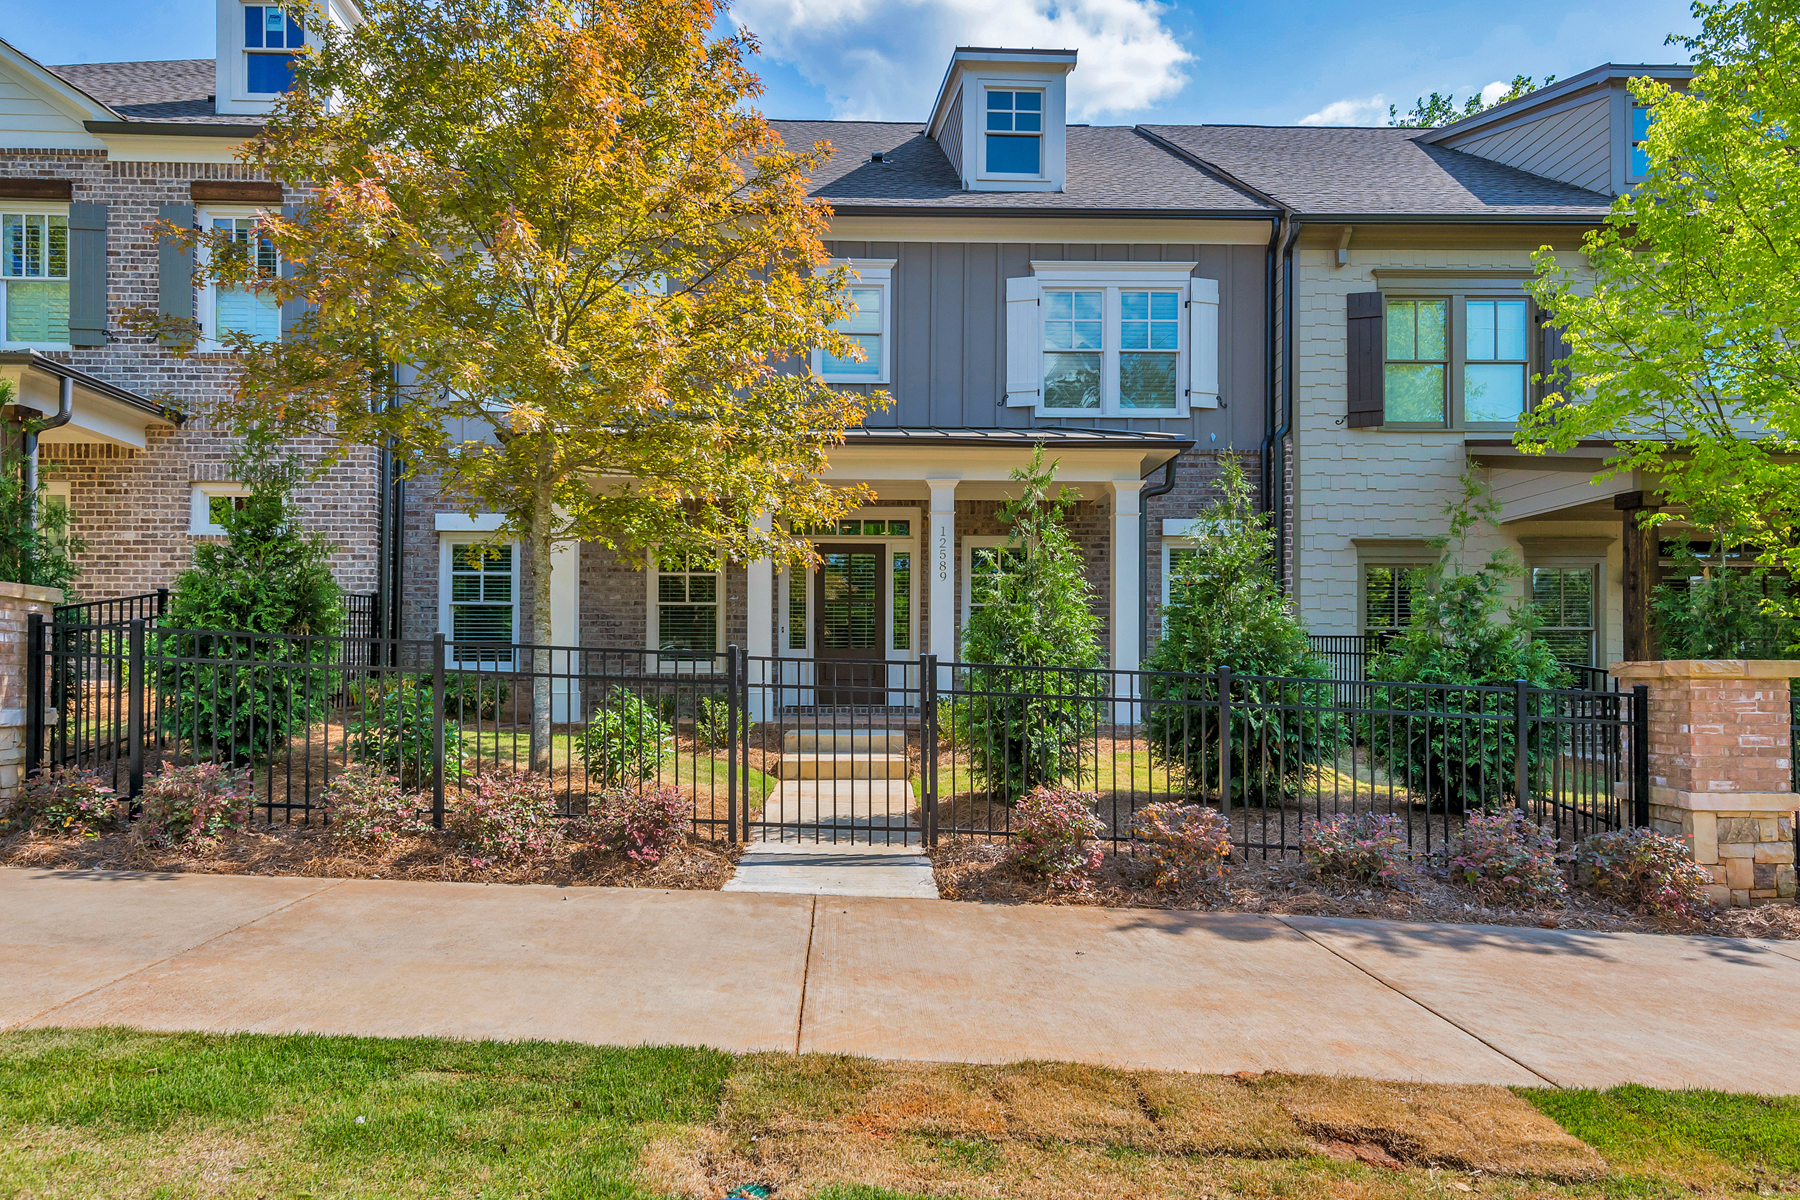 Townhouse for Sale at New Community In The Heart Of Crabapple 12589 Crabapple Rd Milton, Georgia 30004 United States